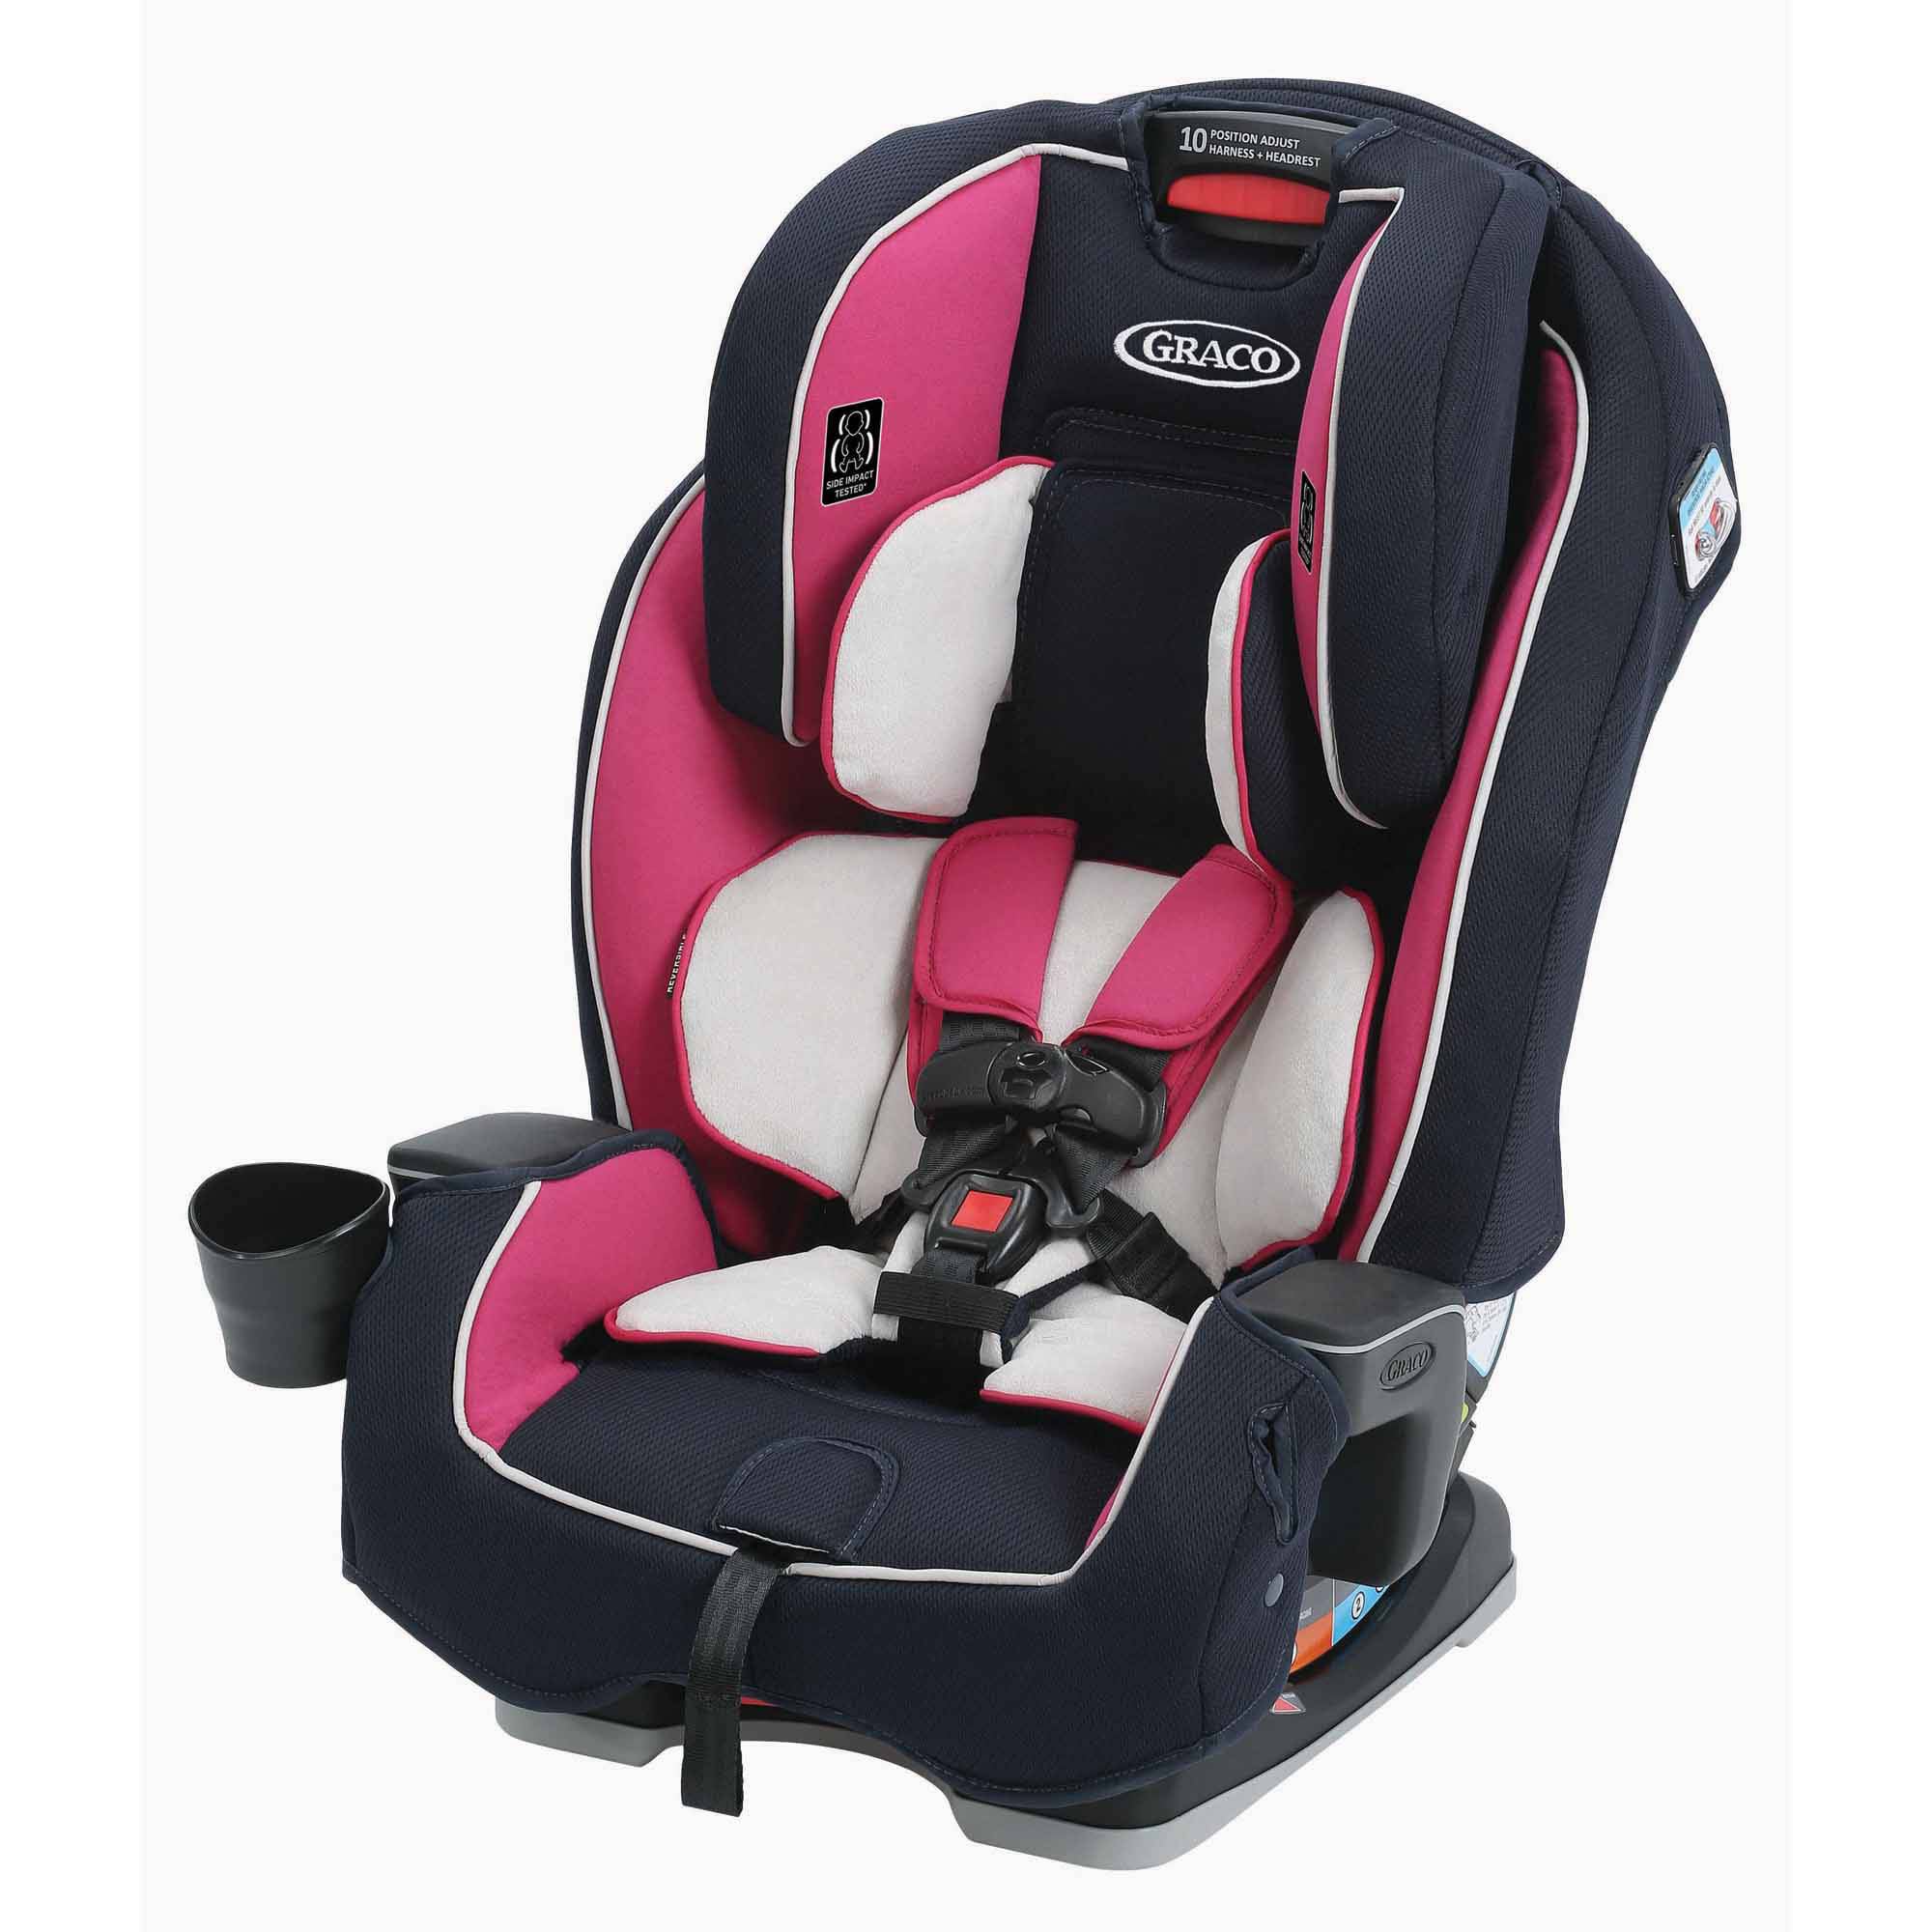 Graco Milestone All-in-1 Convertible Car Seat, Ayla